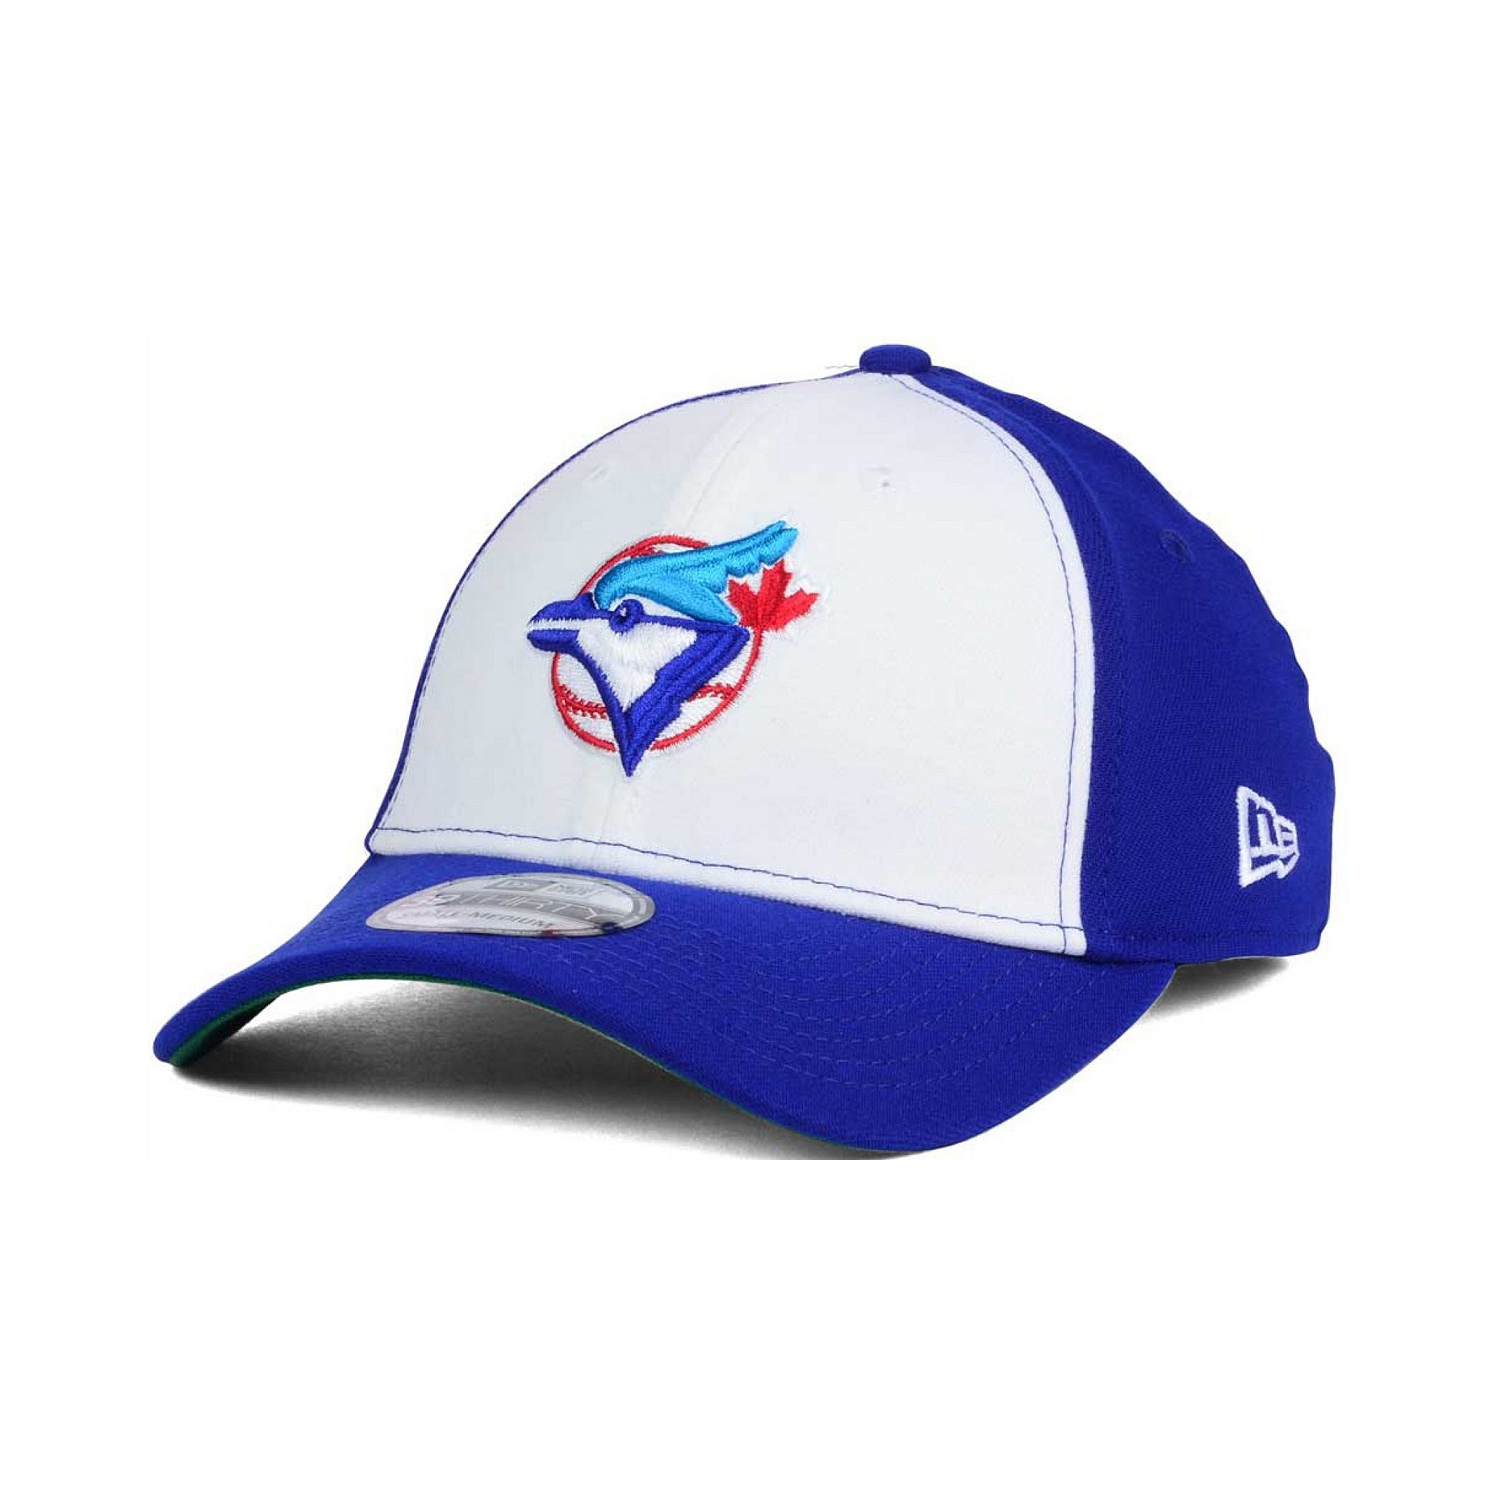 3600bb48920 New Era Toronto Blue Jays Coop 39THIRTY Cap in White Blue as seen on Meghan